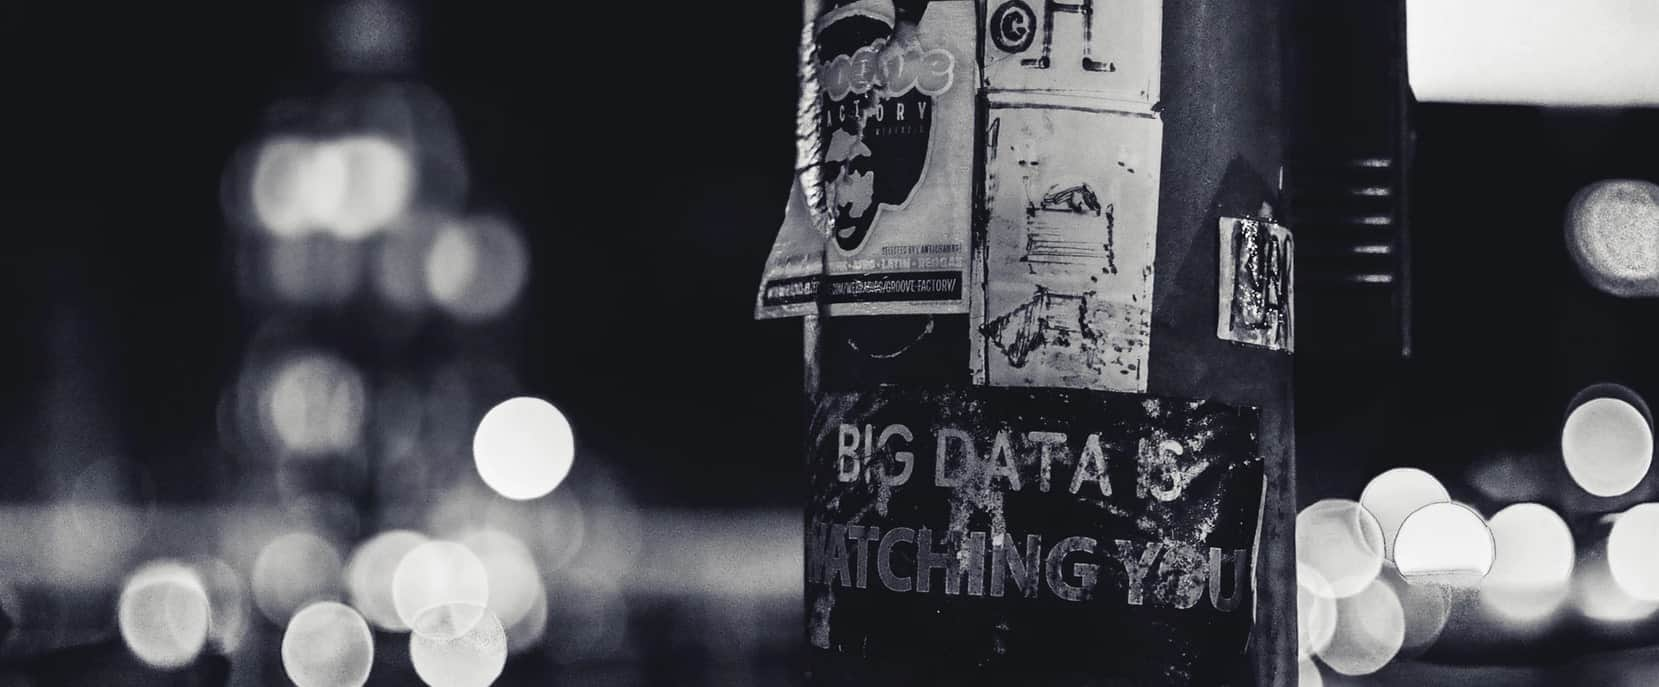 Big data is watching You Lyon Ev